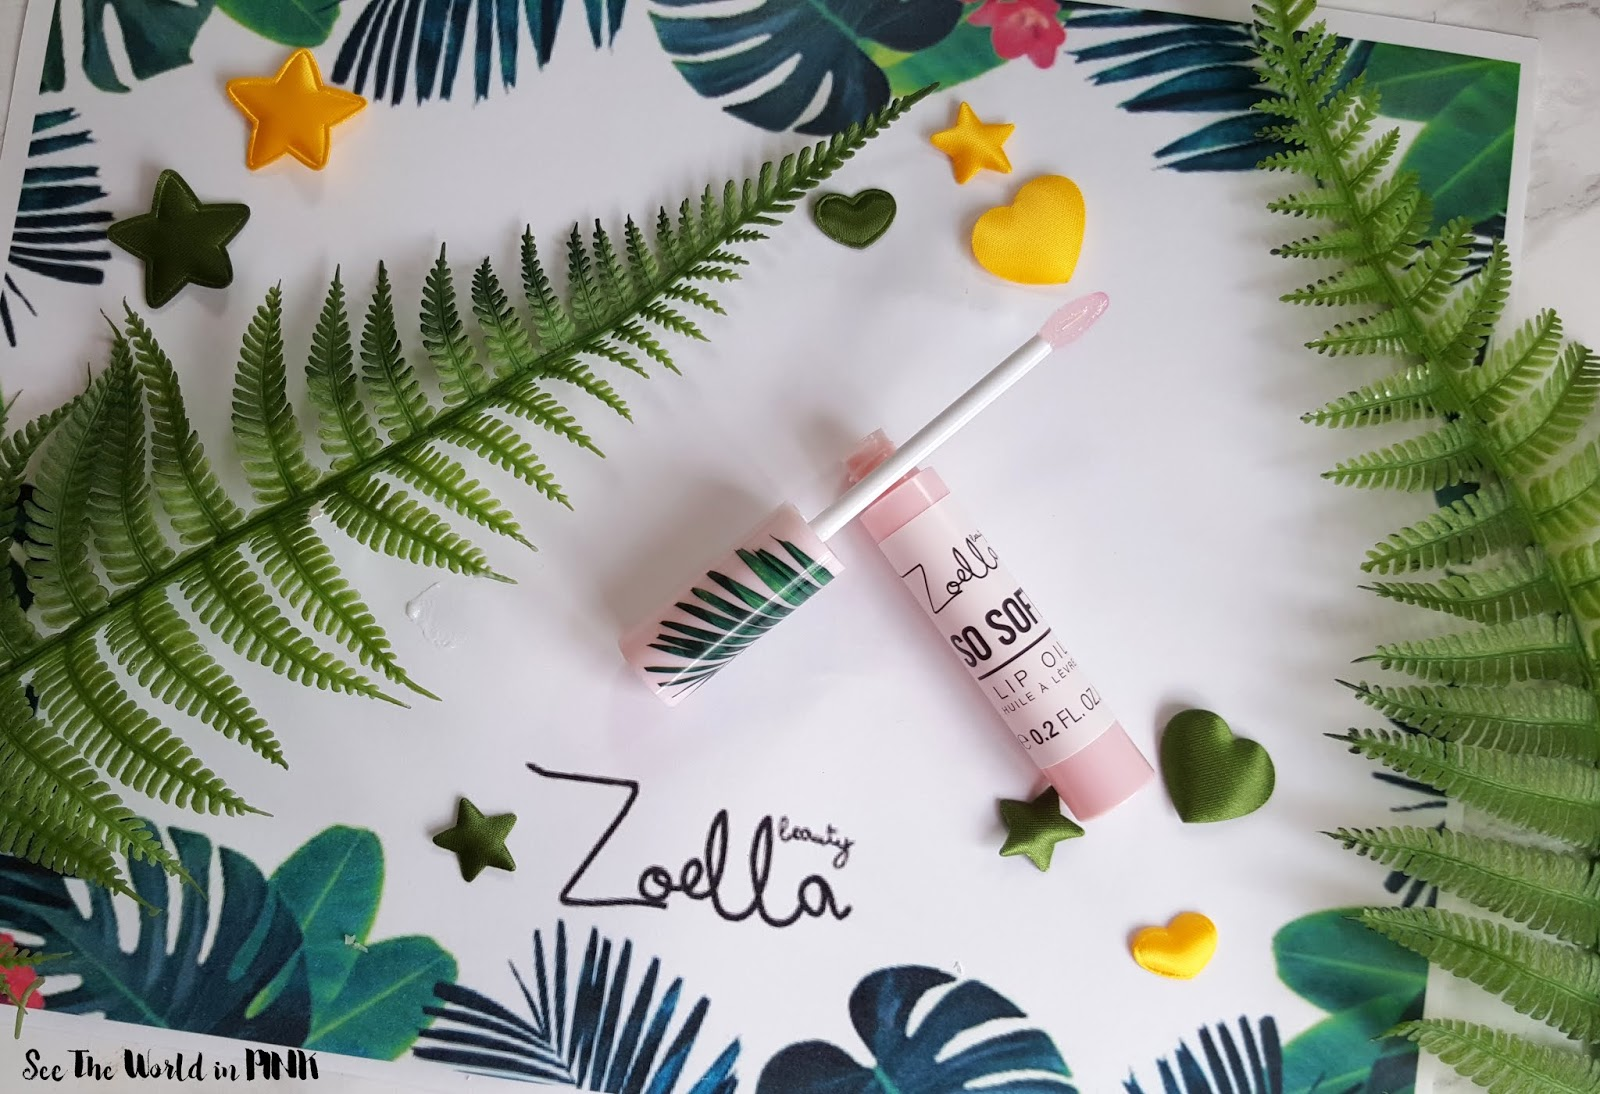 Skincare Sunday - Zoella Beauty Lip Oil & Body Sorbert Review & Giveaway!